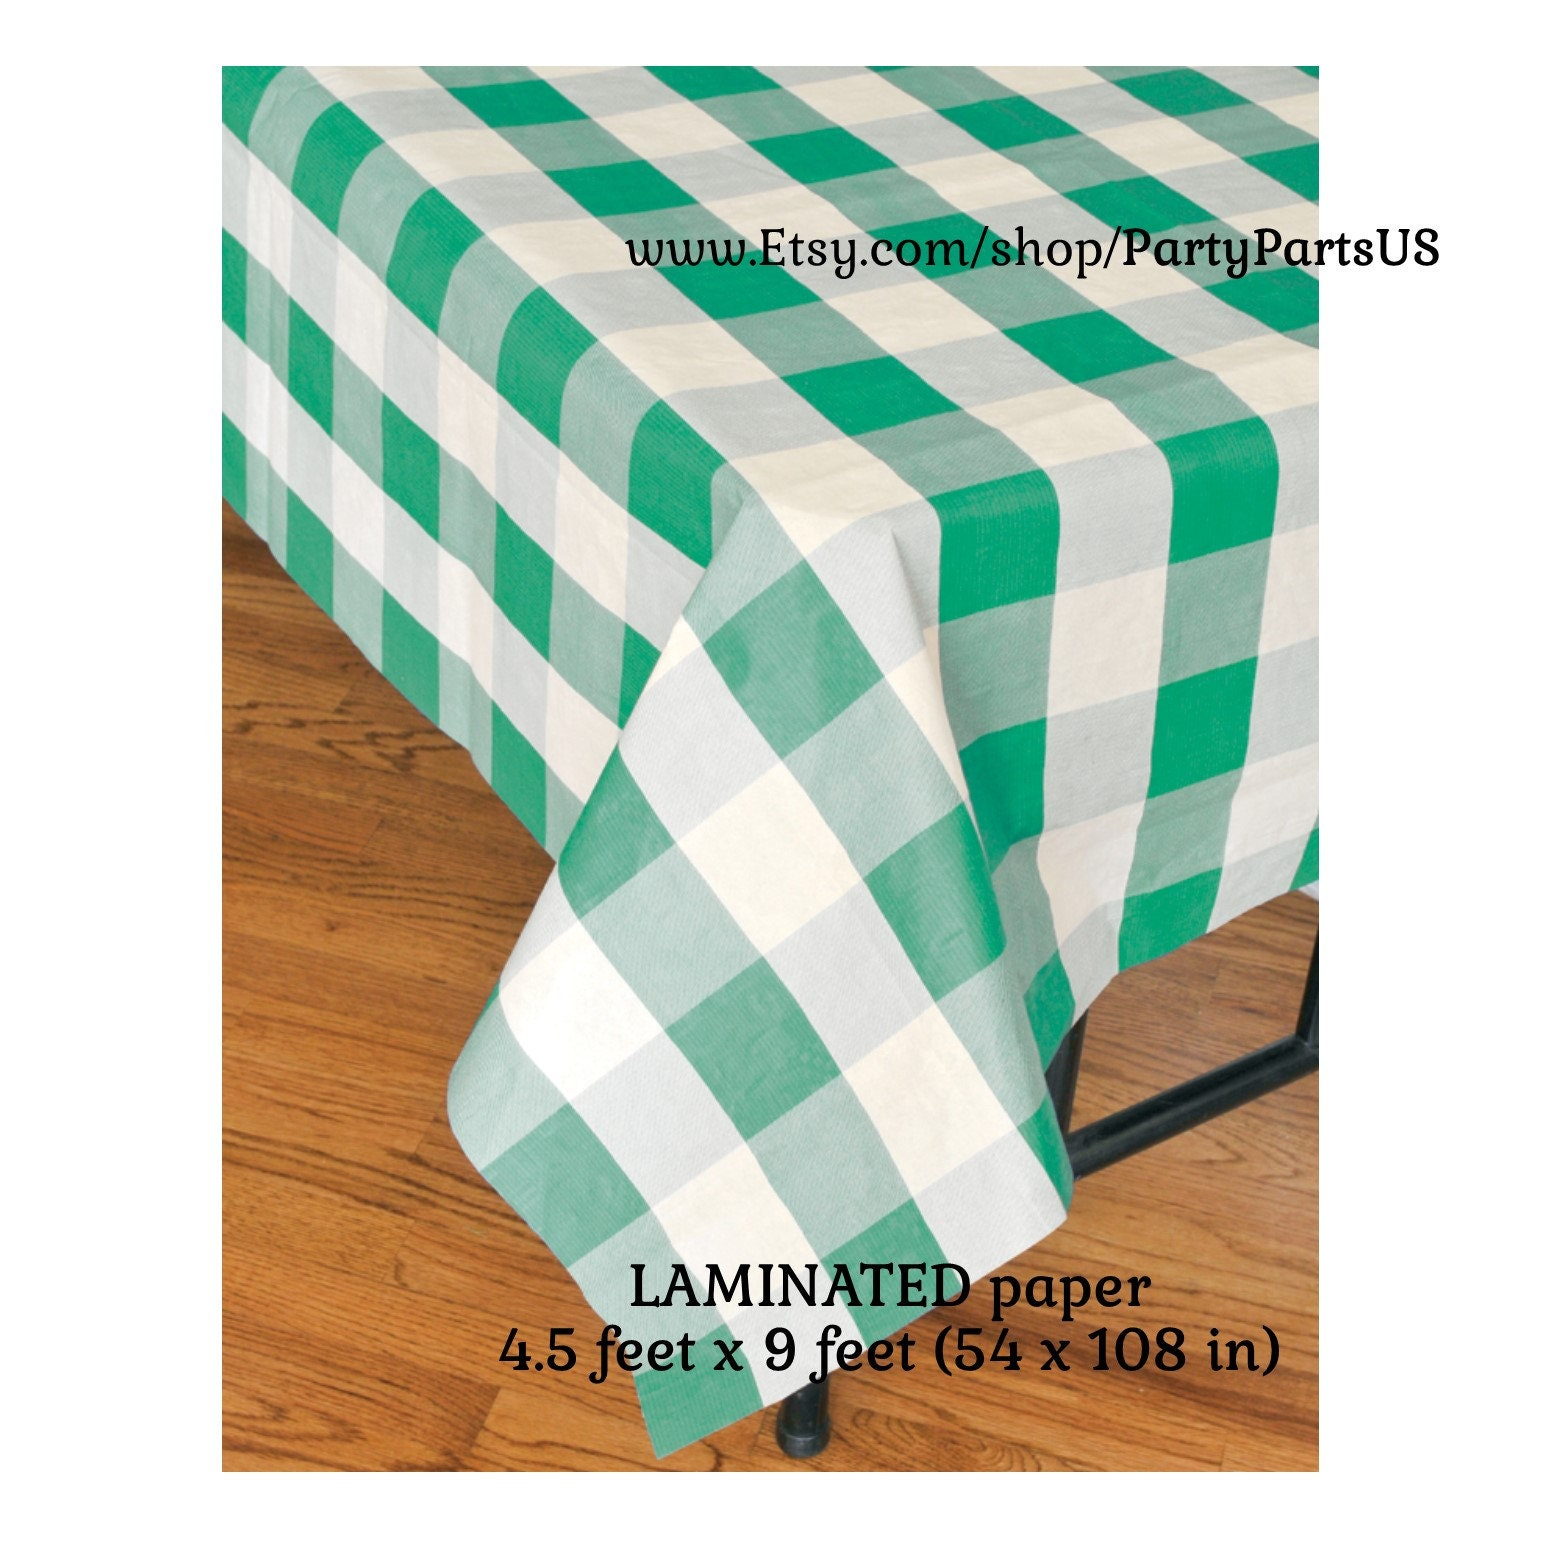 green gingham table cover plaid tablecloth picnic supplies | Etsy